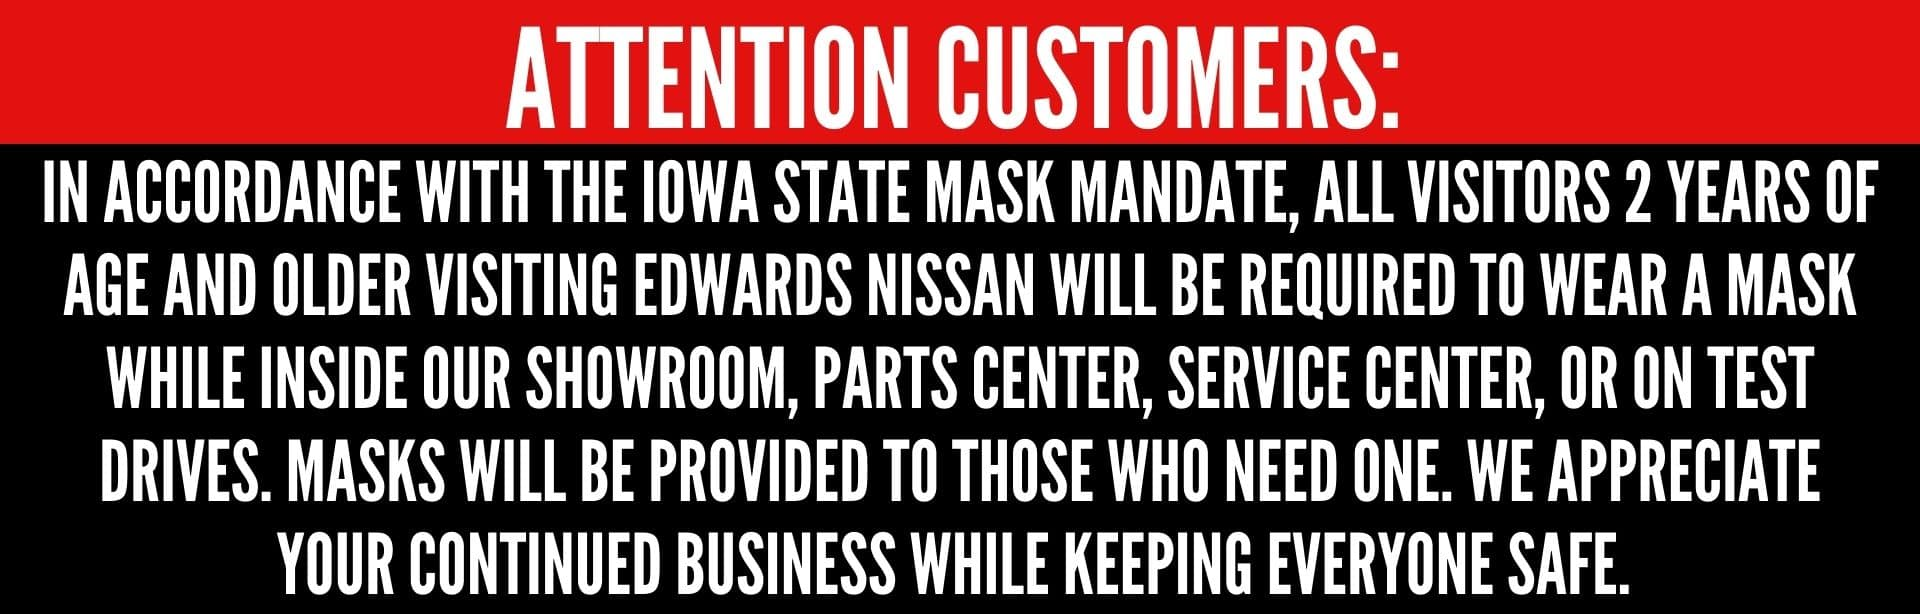 Must wear mask at Edwards Nissan